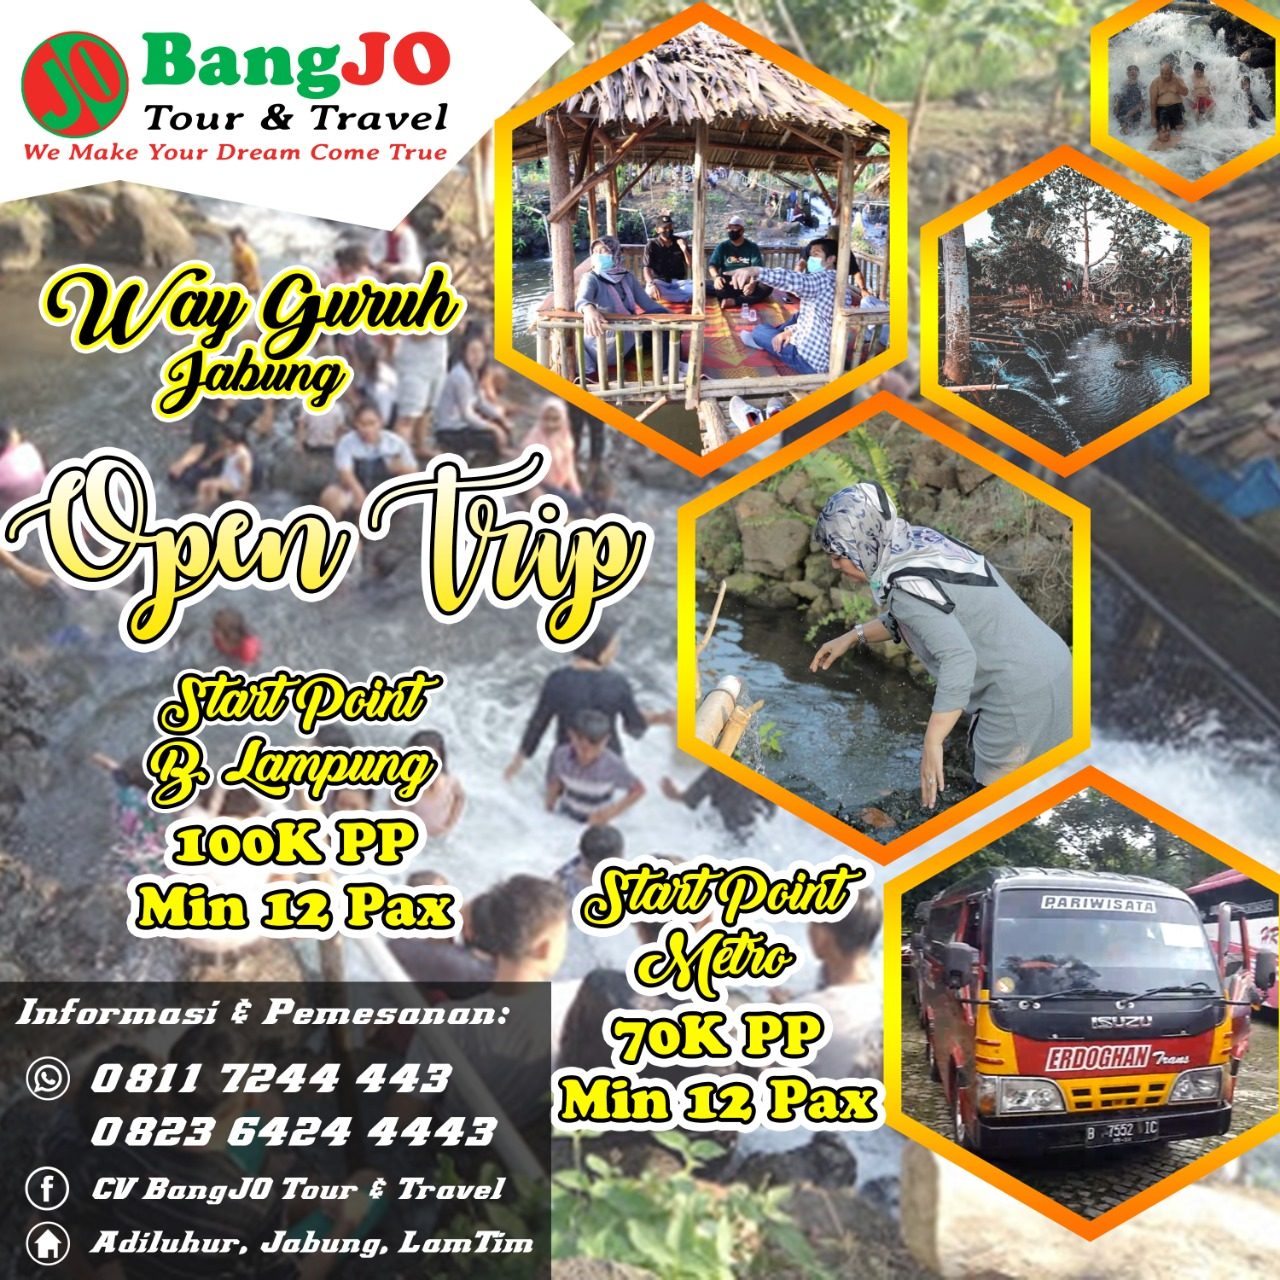 Bangjo Tour and Travel Siap Antarkan Berwisata Ke Way Guruh